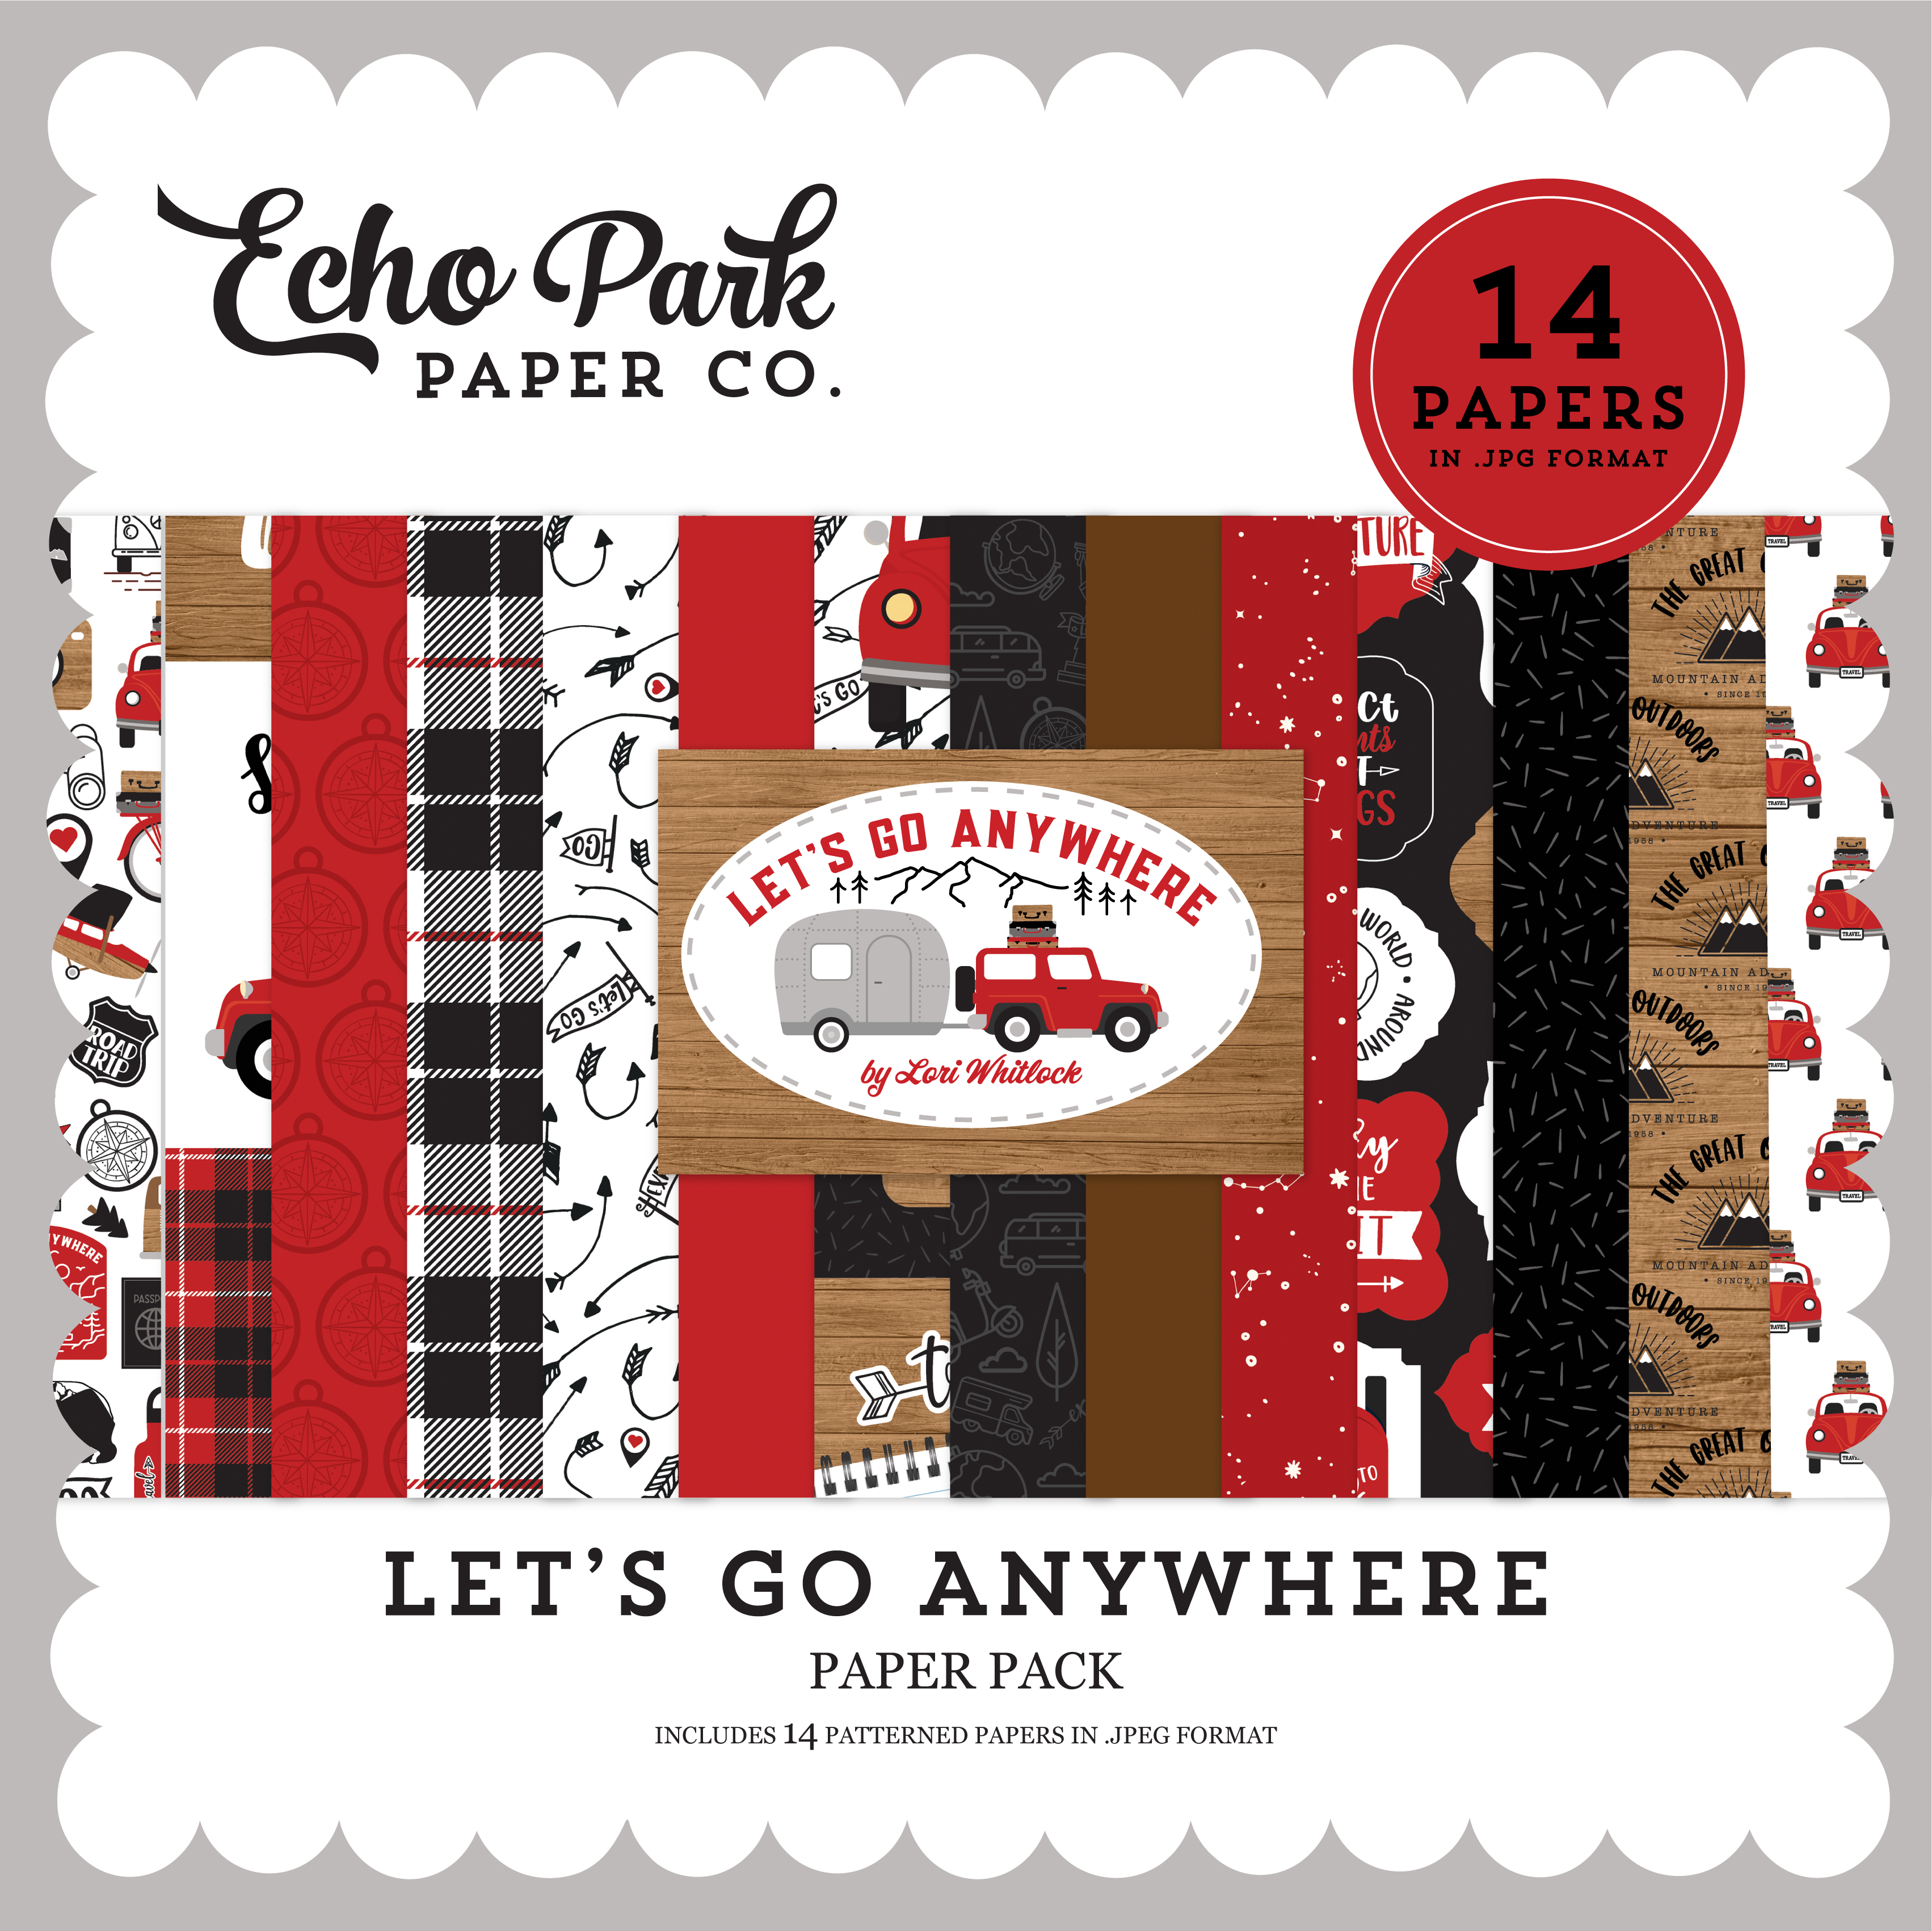 Let's Go Anywhere Paper Pack #1